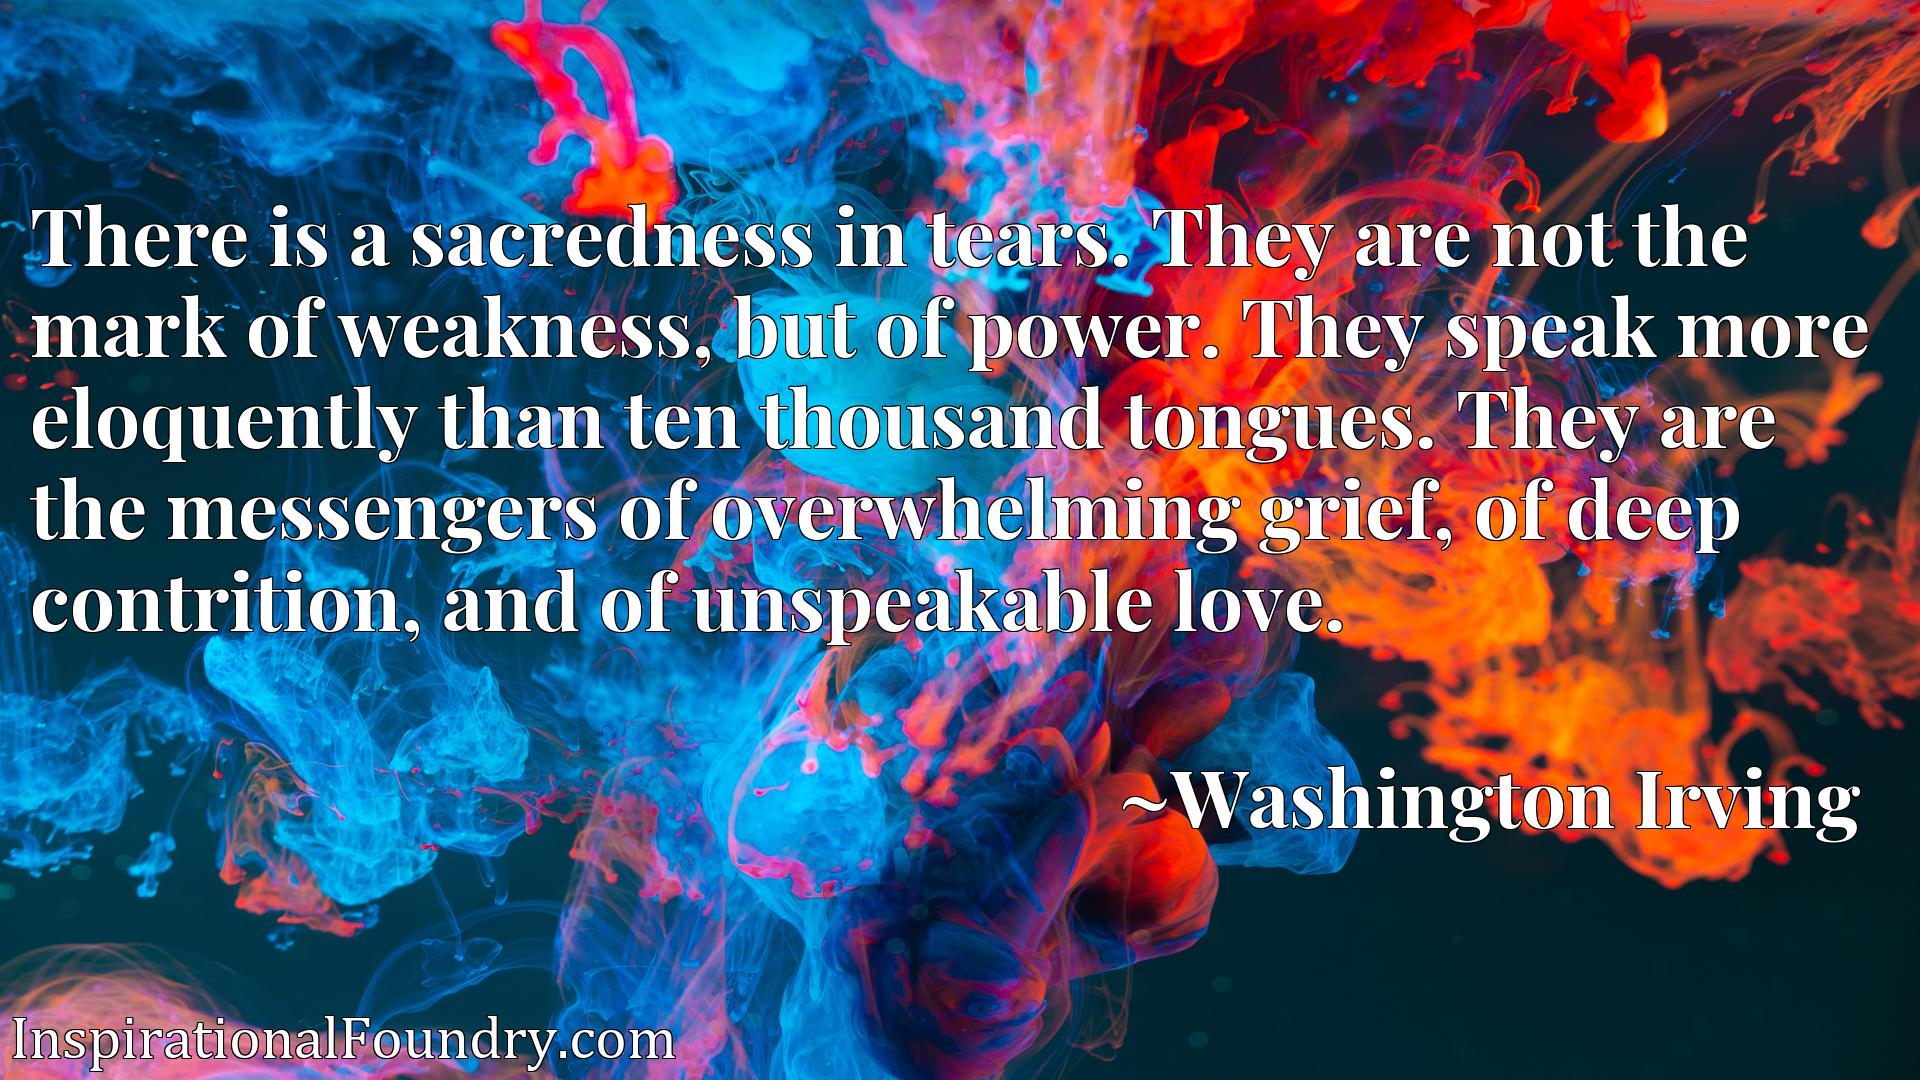 There is a sacredness in tears. They are not the mark of weakness, but of power. They speak more eloquently than ten thousand tongues. They are the messengers of overwhelming grief, of deep contrition, and of unspeakable love.